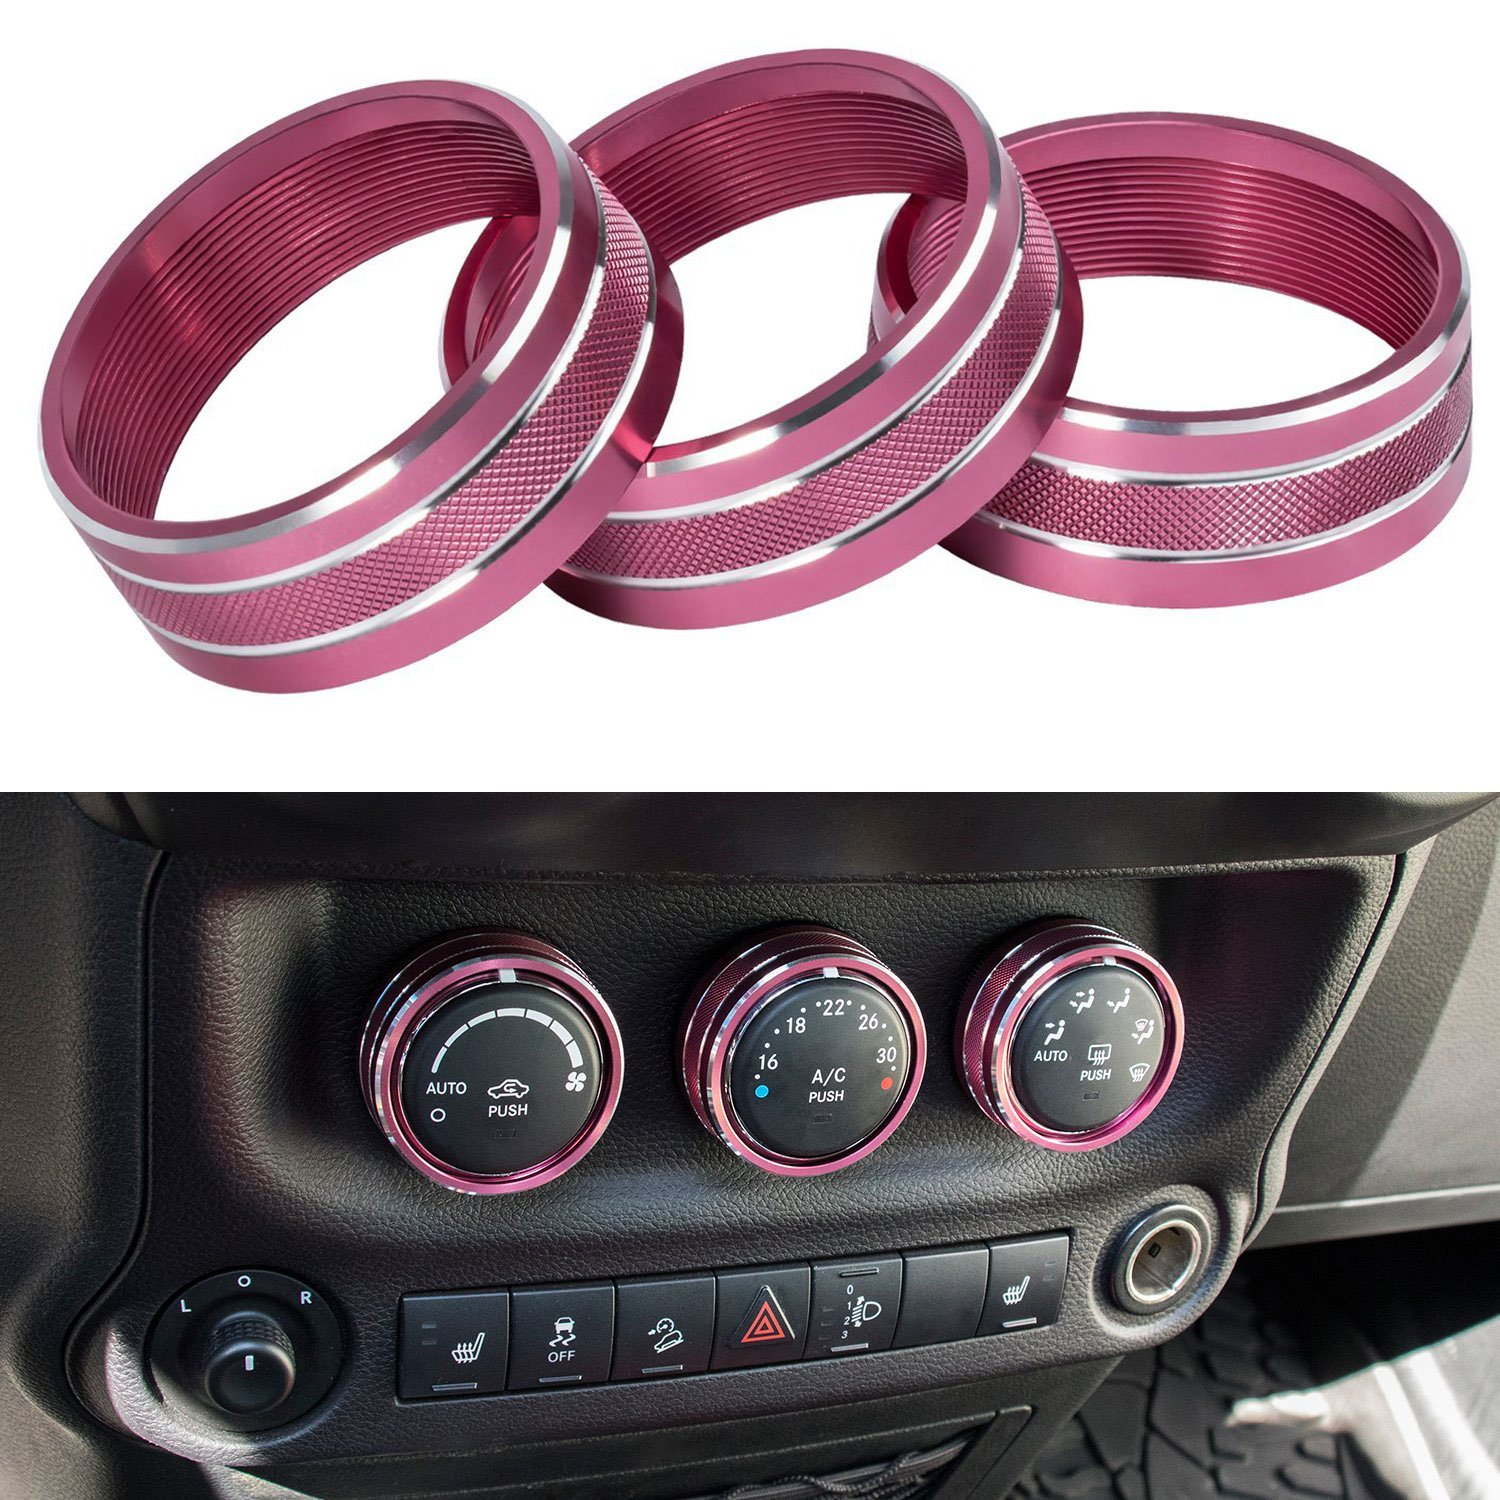 E-cowlboy Interior Audio Air Conditioning Button Cover Decoration Twist Switch Ring Trim for Jeep Wrangler JK JKU Compass Patriot 2011 2012 2013 2014 2015 2016 3PC/SET (Pink) ¡ ­